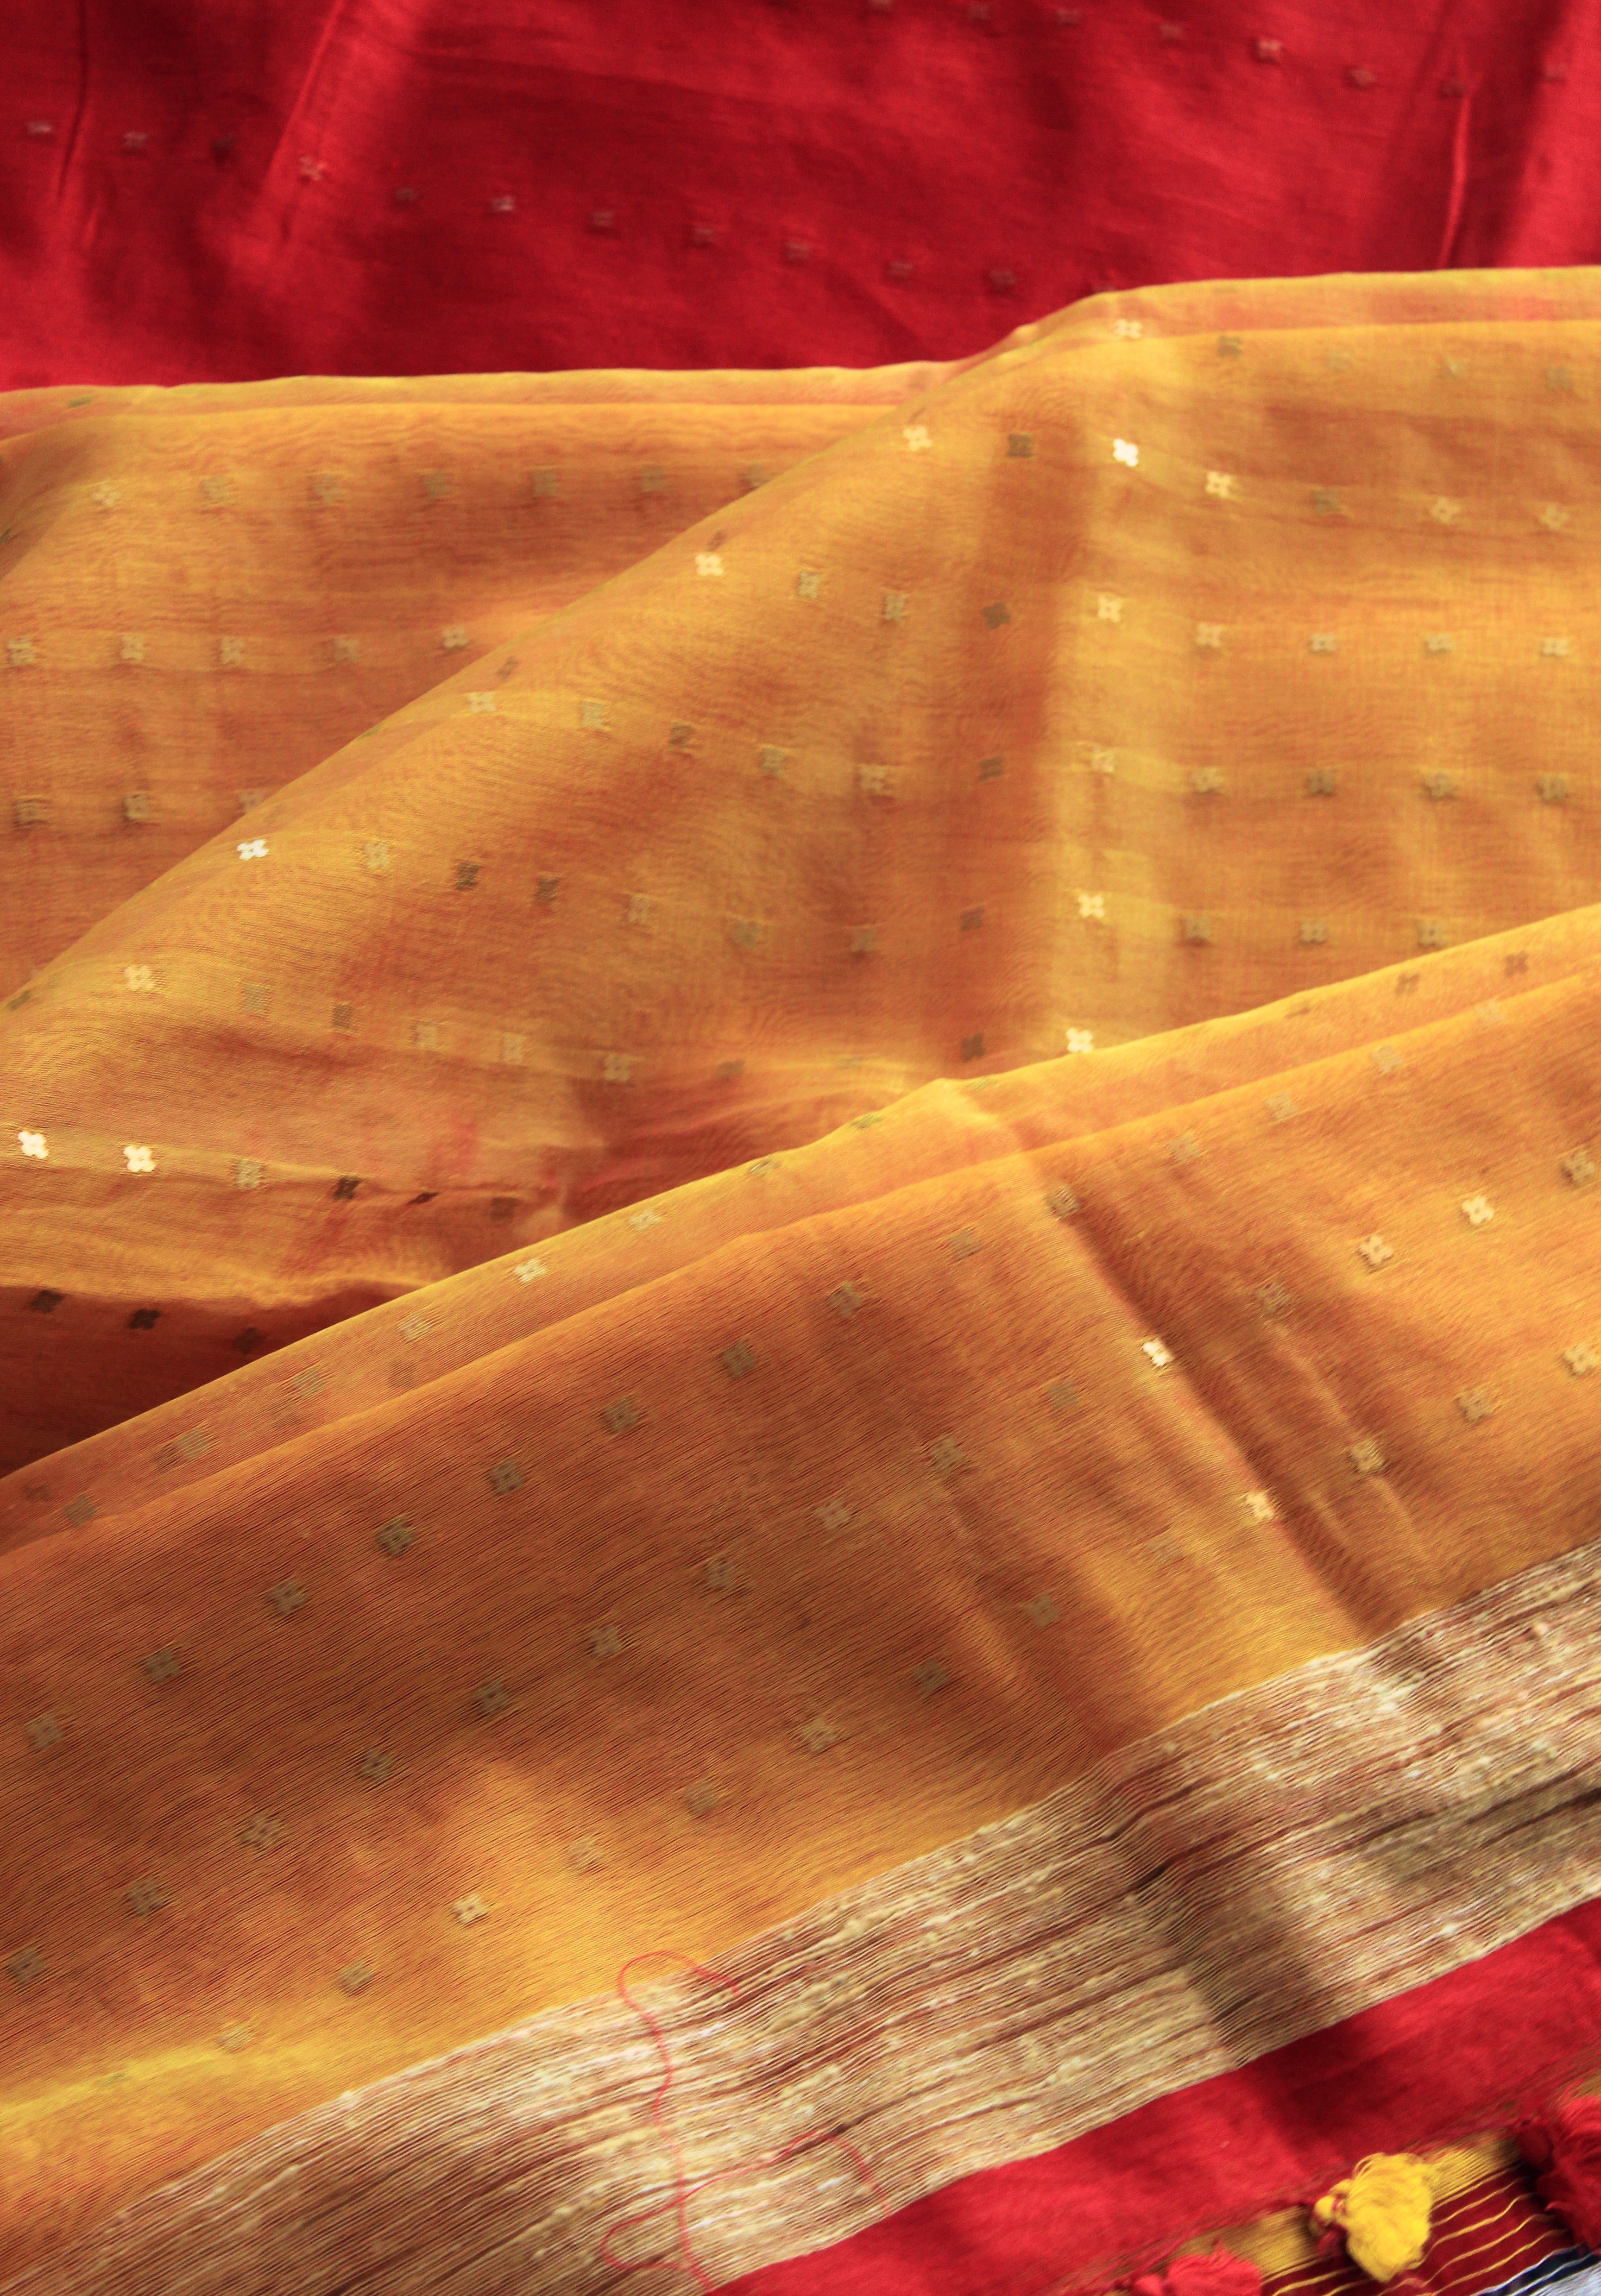 Red and Yellow Bengal Cotton Silk Handloom Saree with Woven Sequins and Sheer Palla